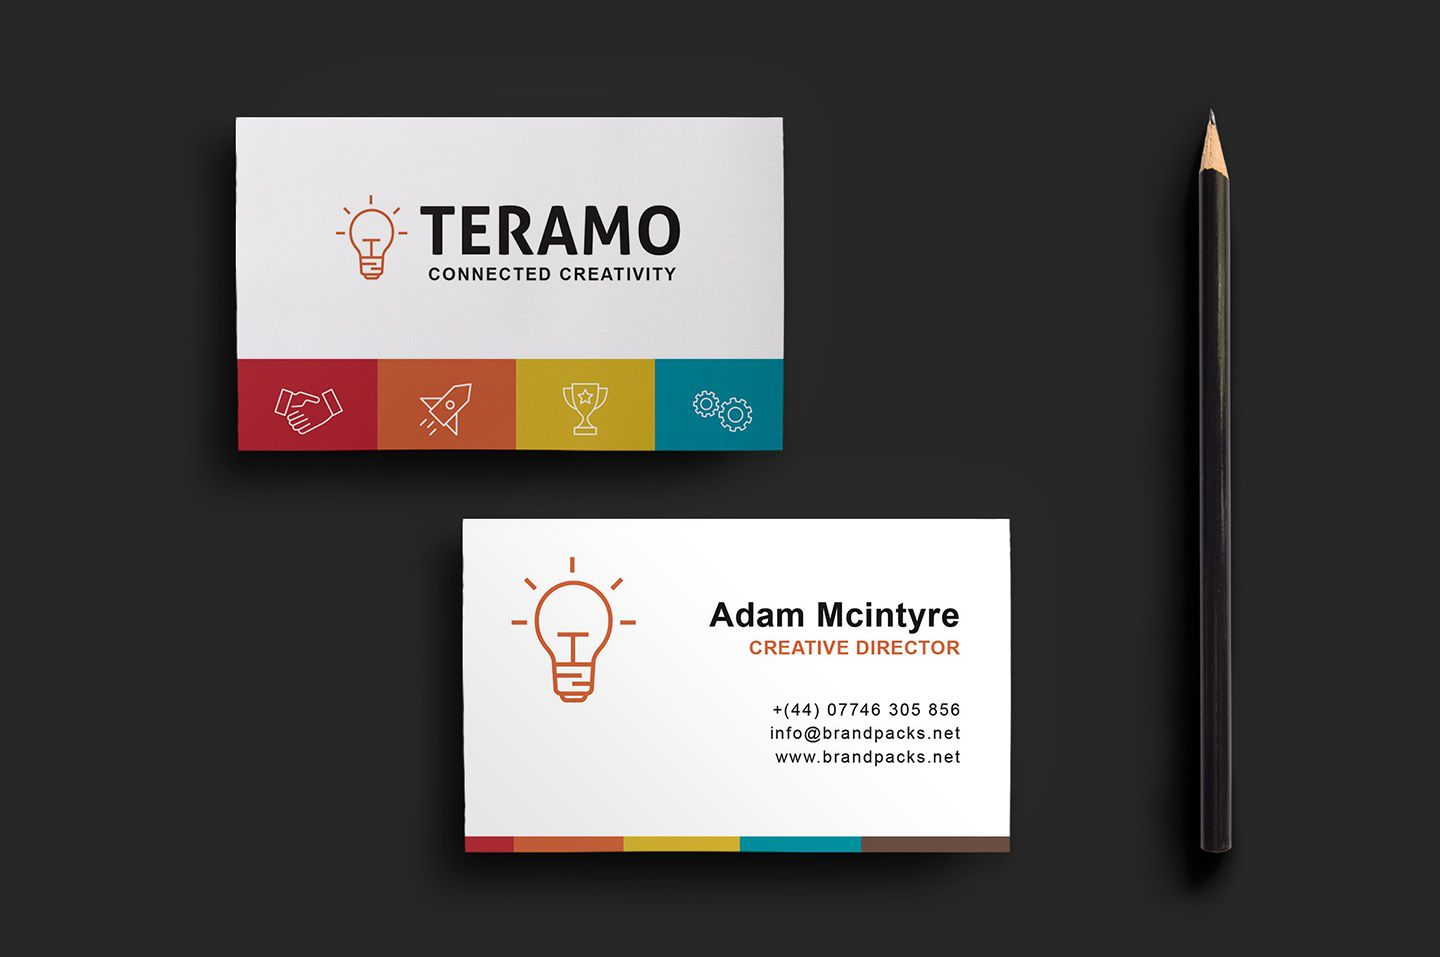 008 Remarkable Staple Busines Card Template Psd High Definition Full